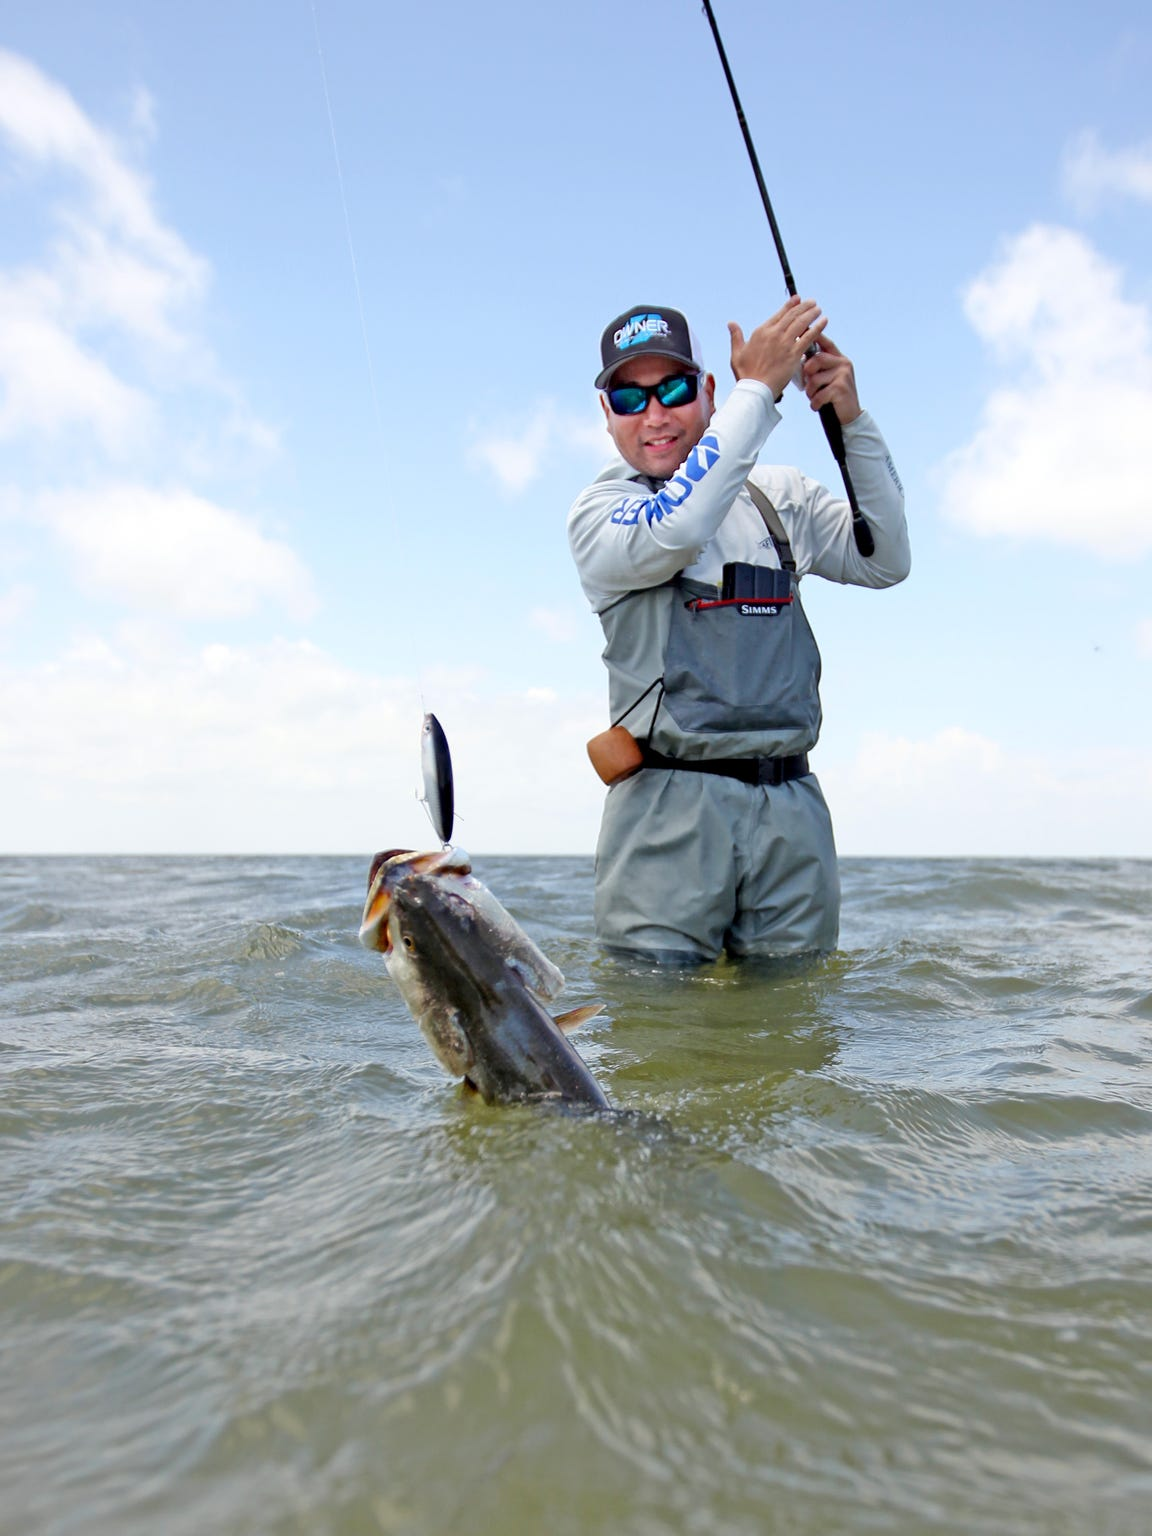 If you'd like to try wade-fishing, ask prospective guides whether the waters he fishes are conducive to wading and whether they are willing to do it.